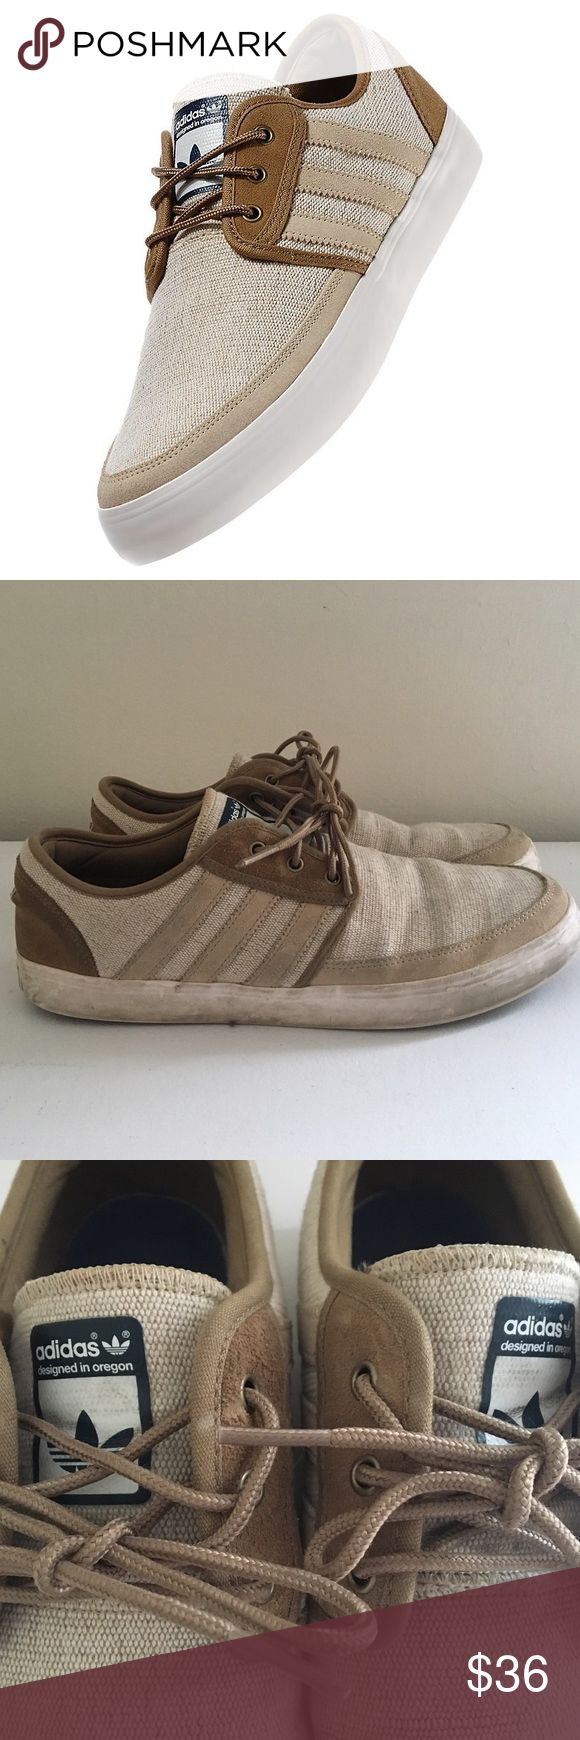 Men's Adidas Seeley Boat Shoes Adidas Seeley Men's boat shoes. Natural jute raw canvas upper. Tonal contrast suede overlays and binding. Vulcanized rubber outsole. Gently used and still a lot of life left! Adidas Shoes Boat Shoes